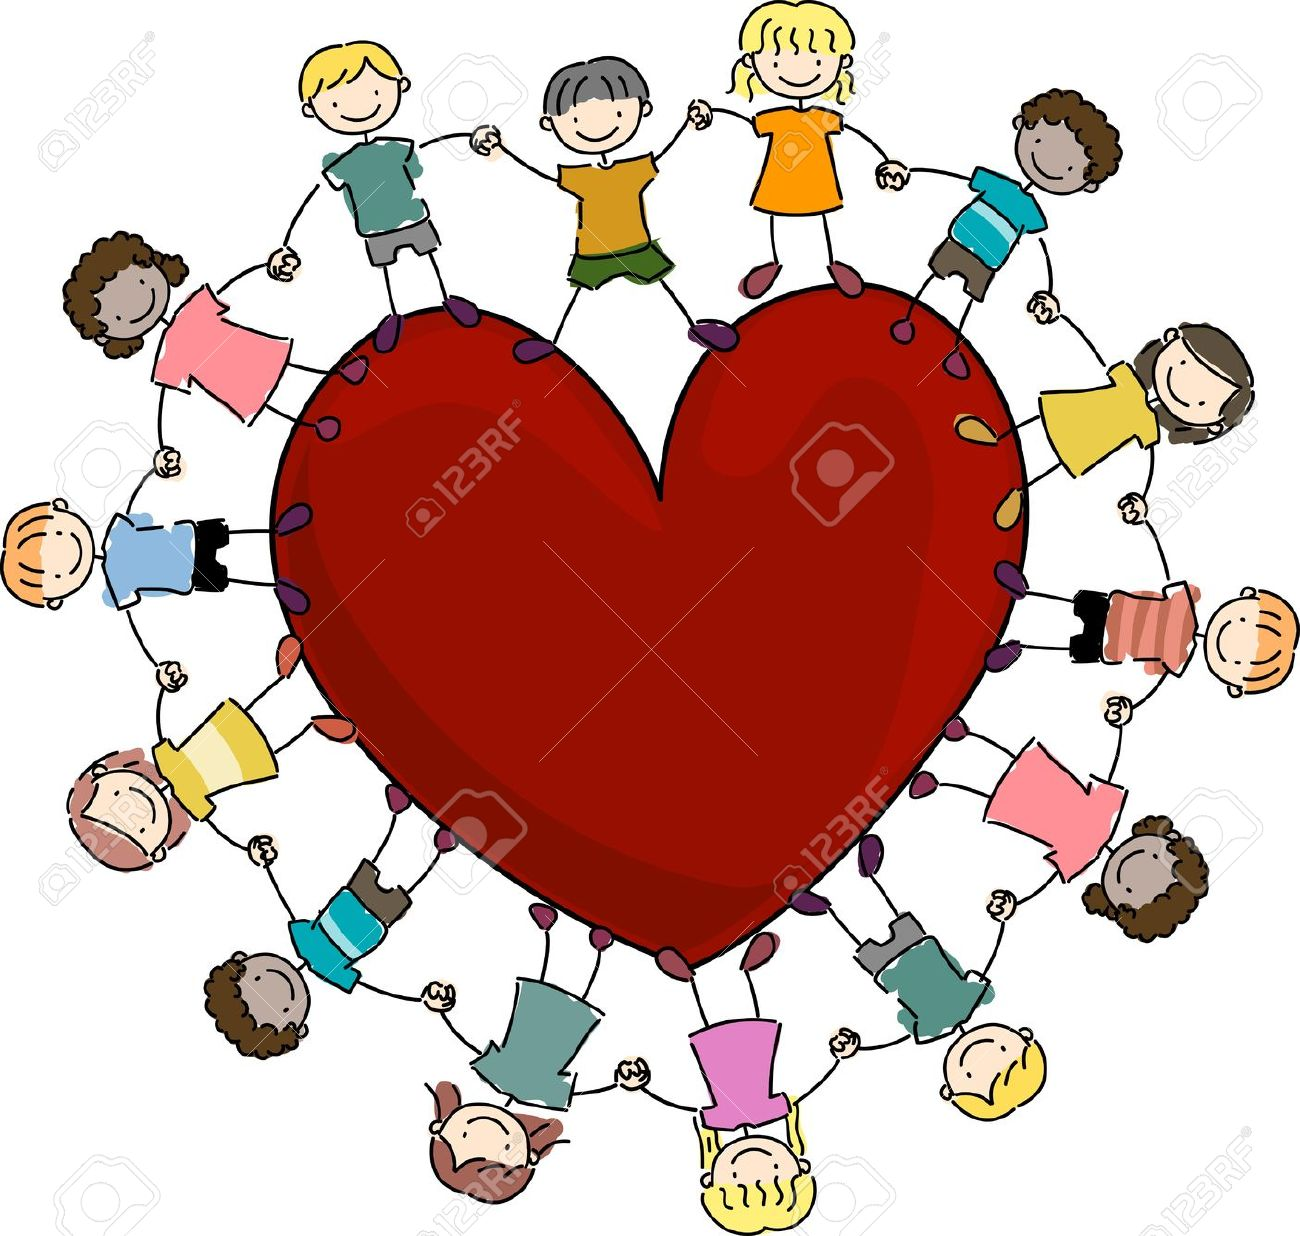 Illustration Of Kids Surrounding A Large Heart Stock Photo ...